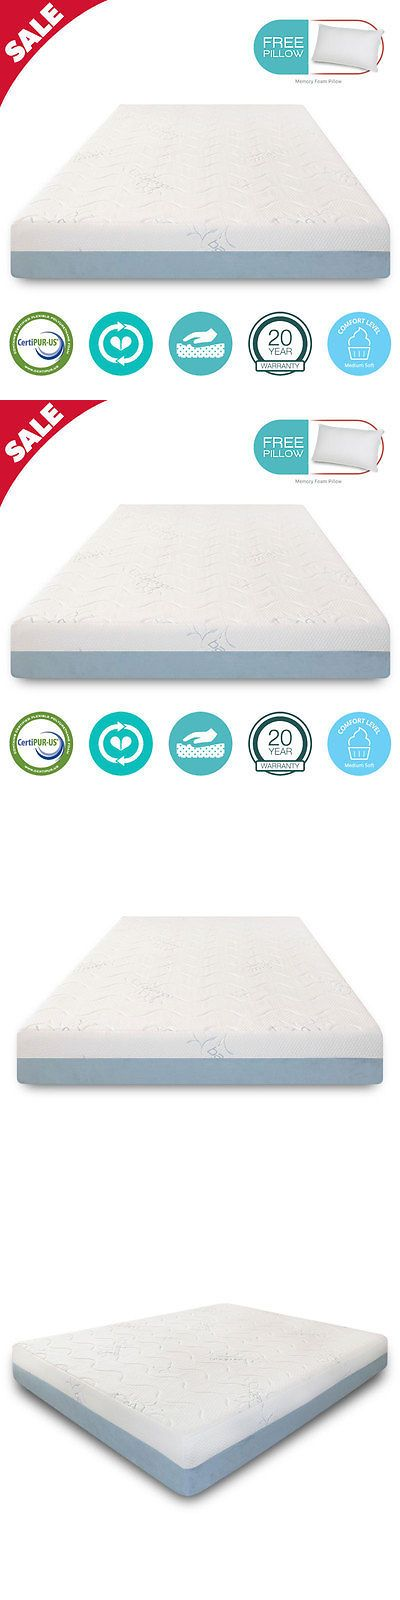 Mattresses 131588 8 Inch Full Size Cool Bamboo Gel Memory Foam Mattress Medium Soft